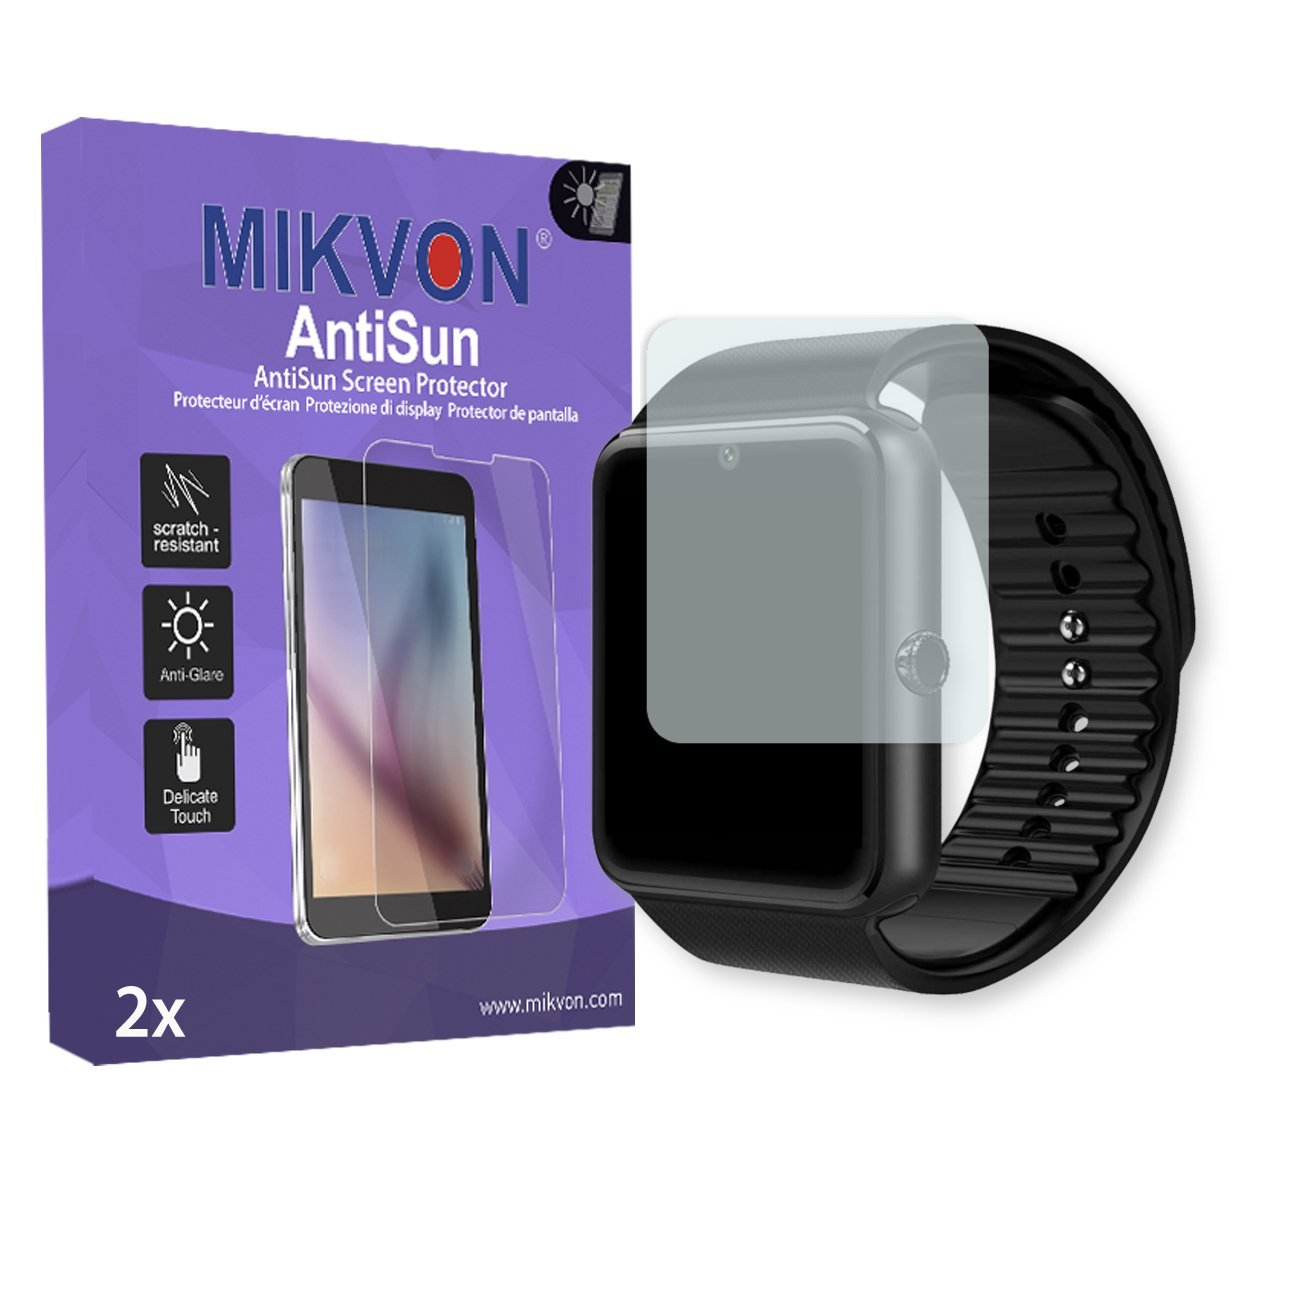 "MIKVON 2X AntiSun Screen Protector for LaTEC 1.54"" Bluetooth Smart Watch - Retail Package with Accessories (Intentionally Smaller Than The Display Due to its Curved Surface)"